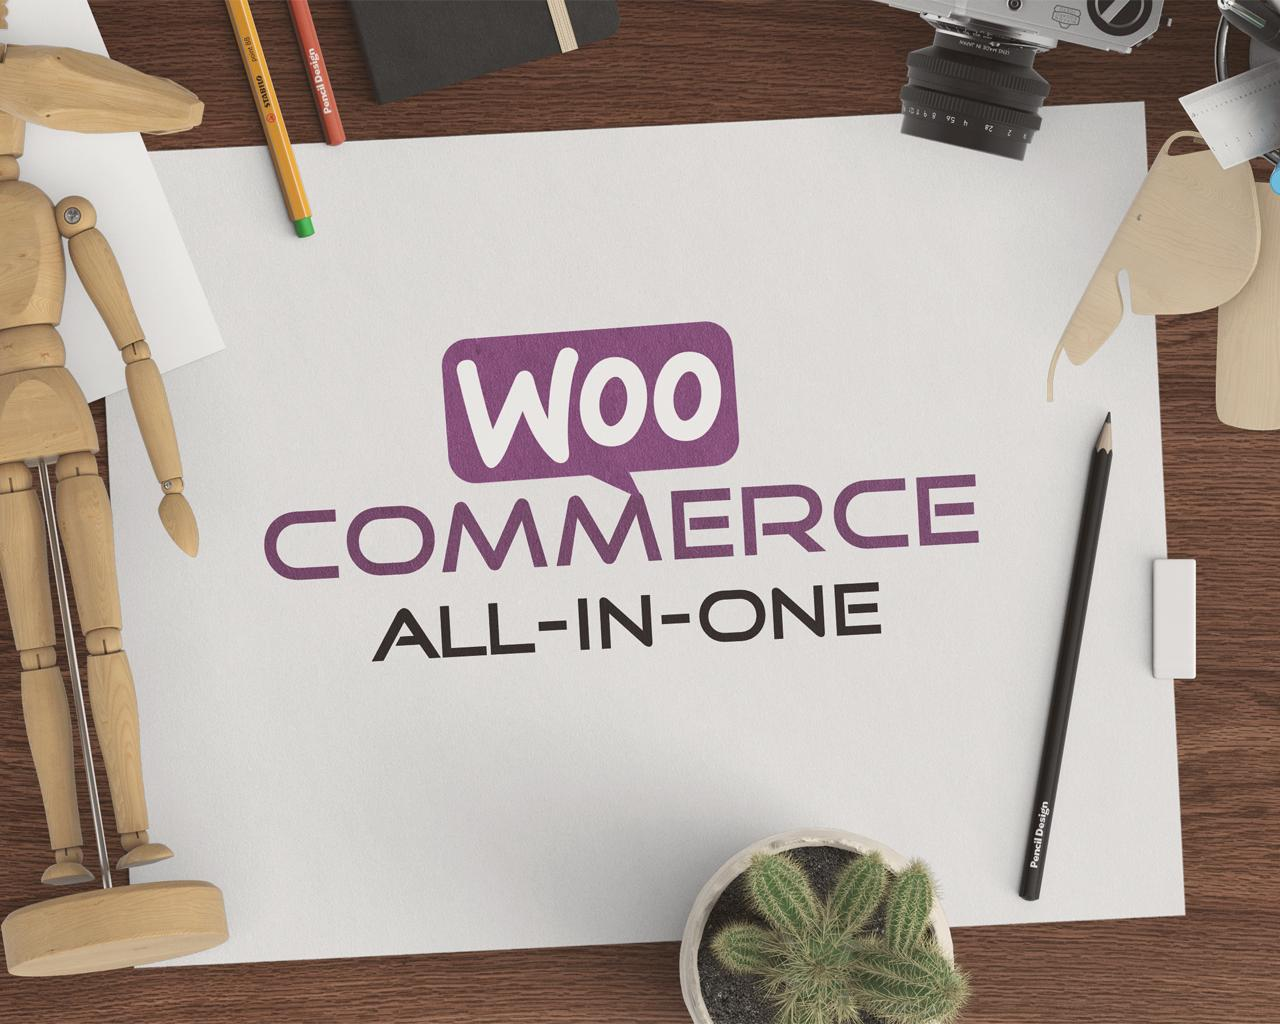 WooCommerce Advanced Customization by hasanet - 99257